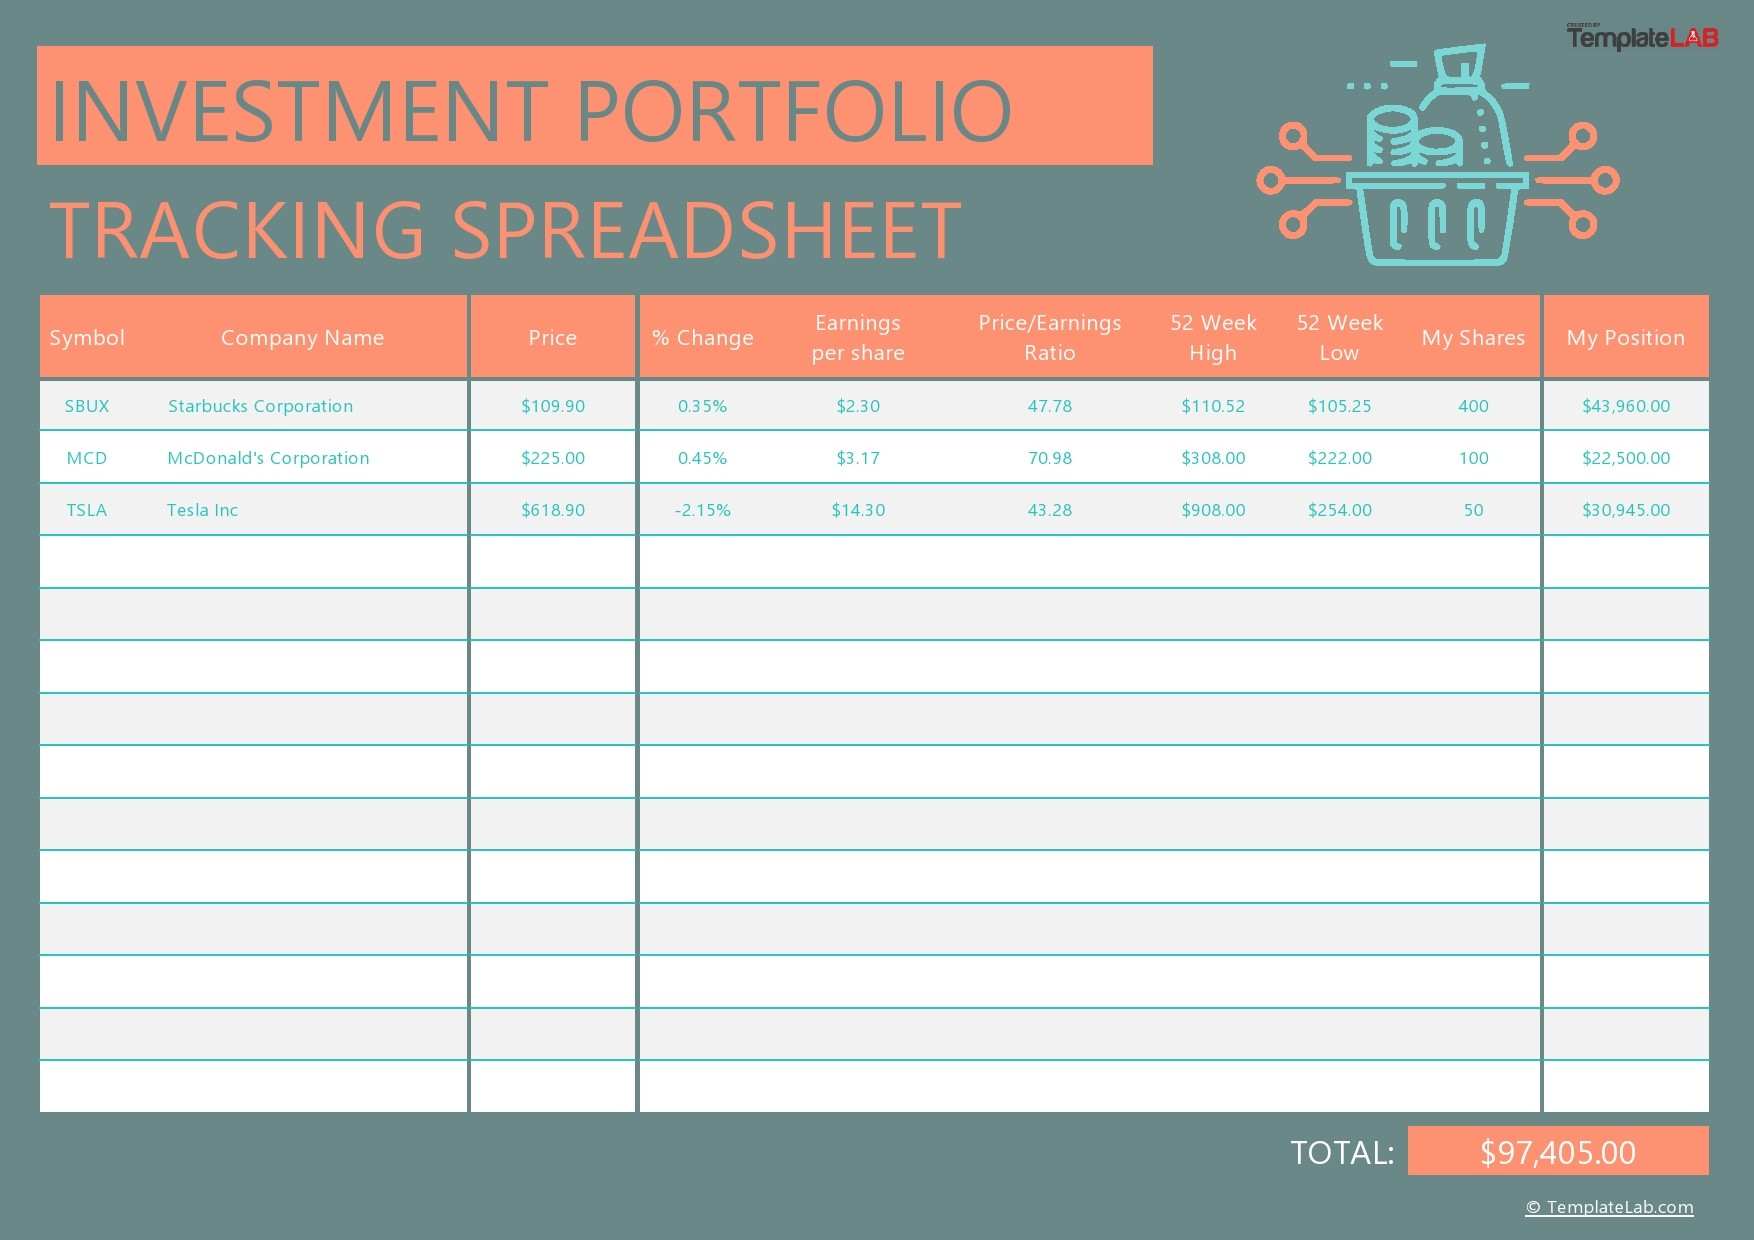 Free Investment Portfolio Tracking Spreadsheet - TemplateLab.com